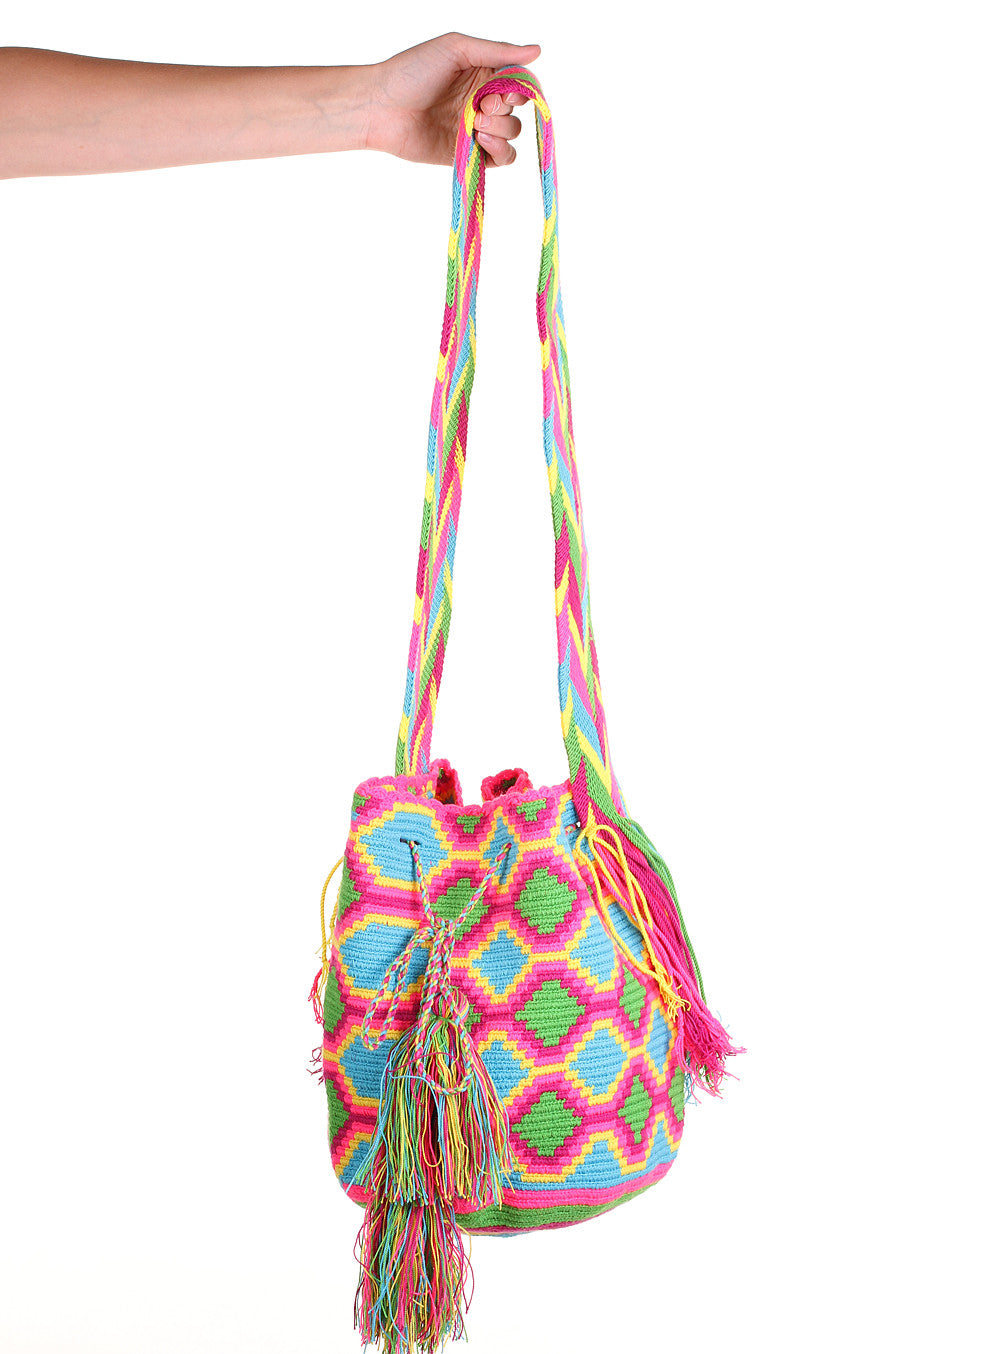 WB107 - Crochet Wayuu Bucket Bag – One-of-a-kind Design